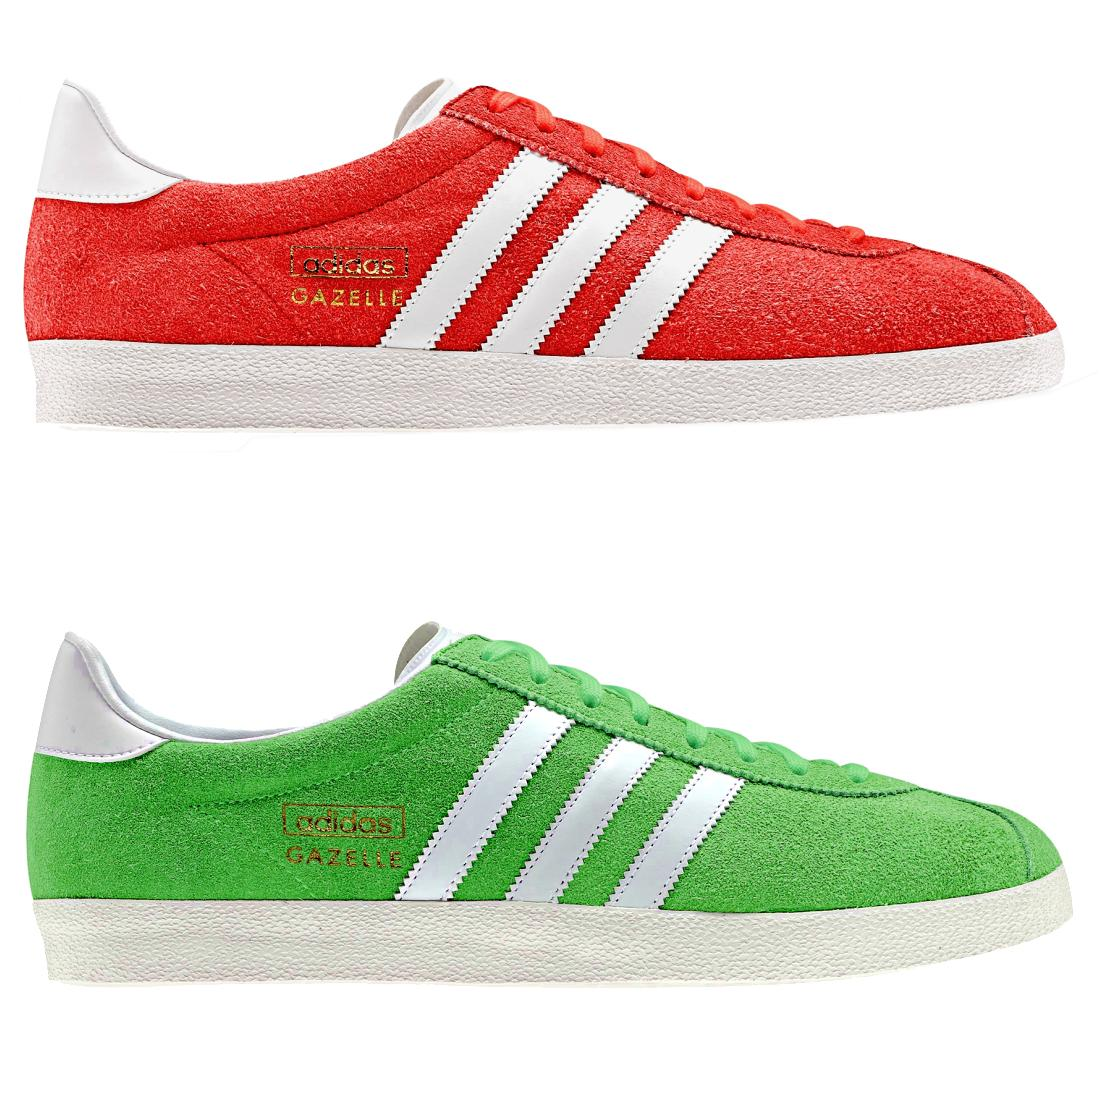 sneakers mens womens adidas originals gazelle og red green ebay. Black Bedroom Furniture Sets. Home Design Ideas